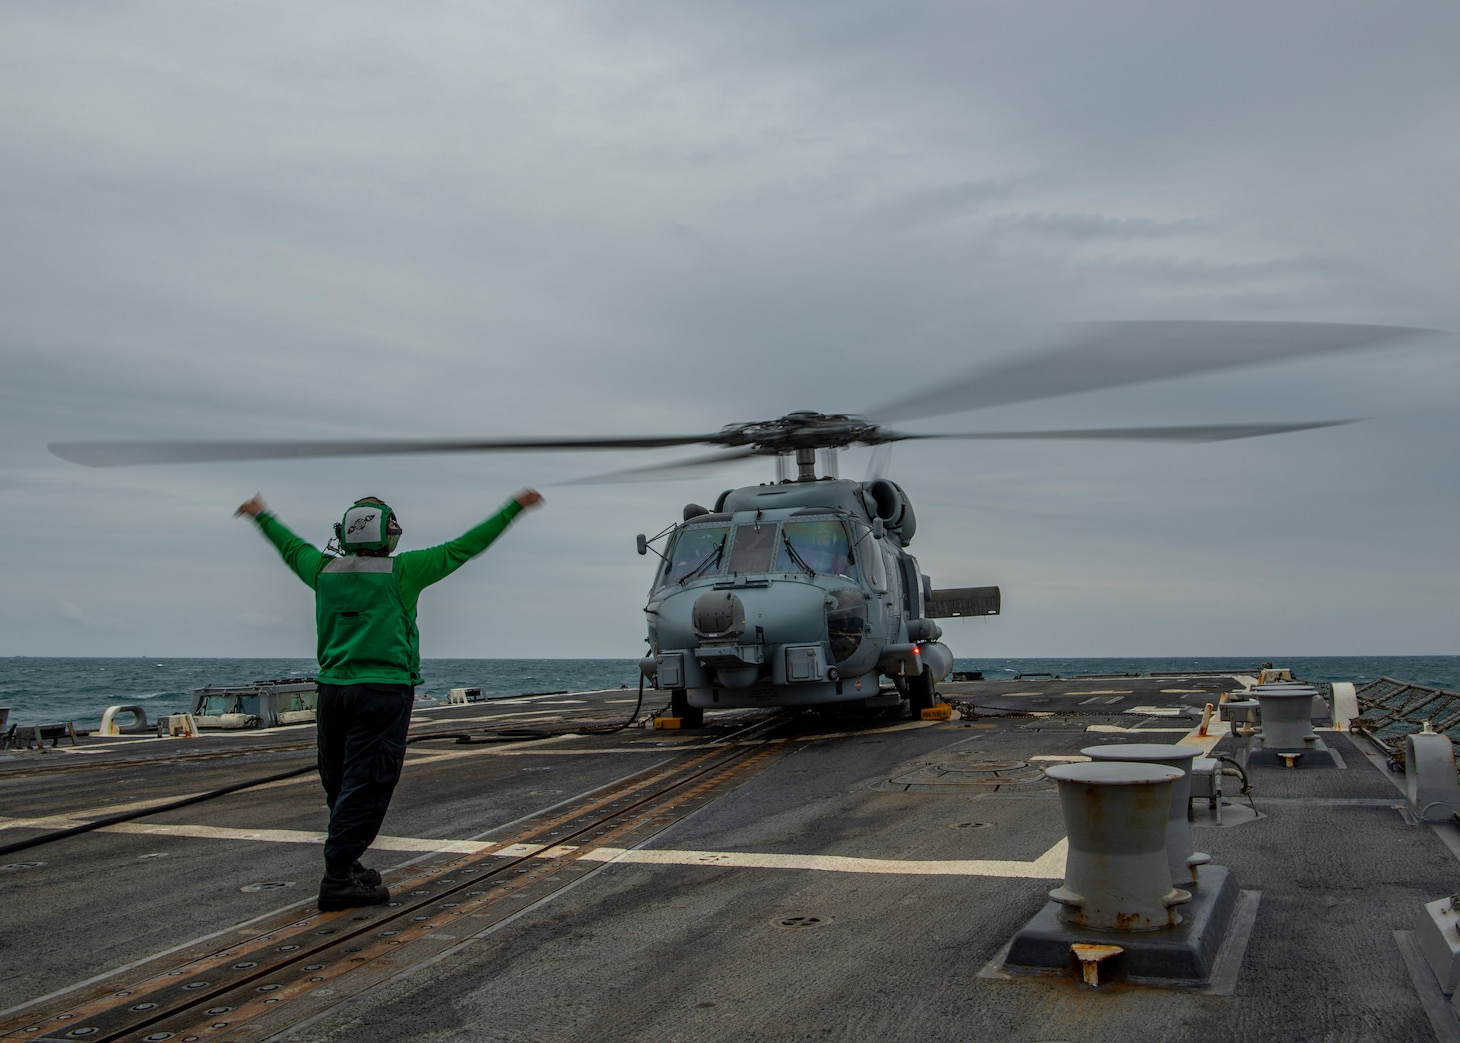 """210310-N-SS350-1022 EAST CHINA SEA (March 10, 2021) U.S. Navy Aviation Electrician's Mate 2nd Class Elizabeth Larson, from Porter, Texas, assigned to the """"Magicians"""" of Helicopter Maritime Strike Squadron (HSM) 35, signals to the pilots in an MH-60R Sea Hawk on the flight deck of the Arleigh Burke-class guided-missile destroyer USS John Finn (DDG 113) March 10, 2021. John Finn, part of the Theodore Roosevelt Carrier Strike Group, is on a scheduled deployment to the U.S. 7th Fleet area of operations. As the U.S. Navy's largest forward-deployed fleet, 7th Fleet routinely operates and interacts with 35 maritime nations while conducting missions to preserve and protect a free and open Indo-Pacific Region. (U.S. Navy photo by Mass Communication Specialist 3rd Class Jason Waite)"""